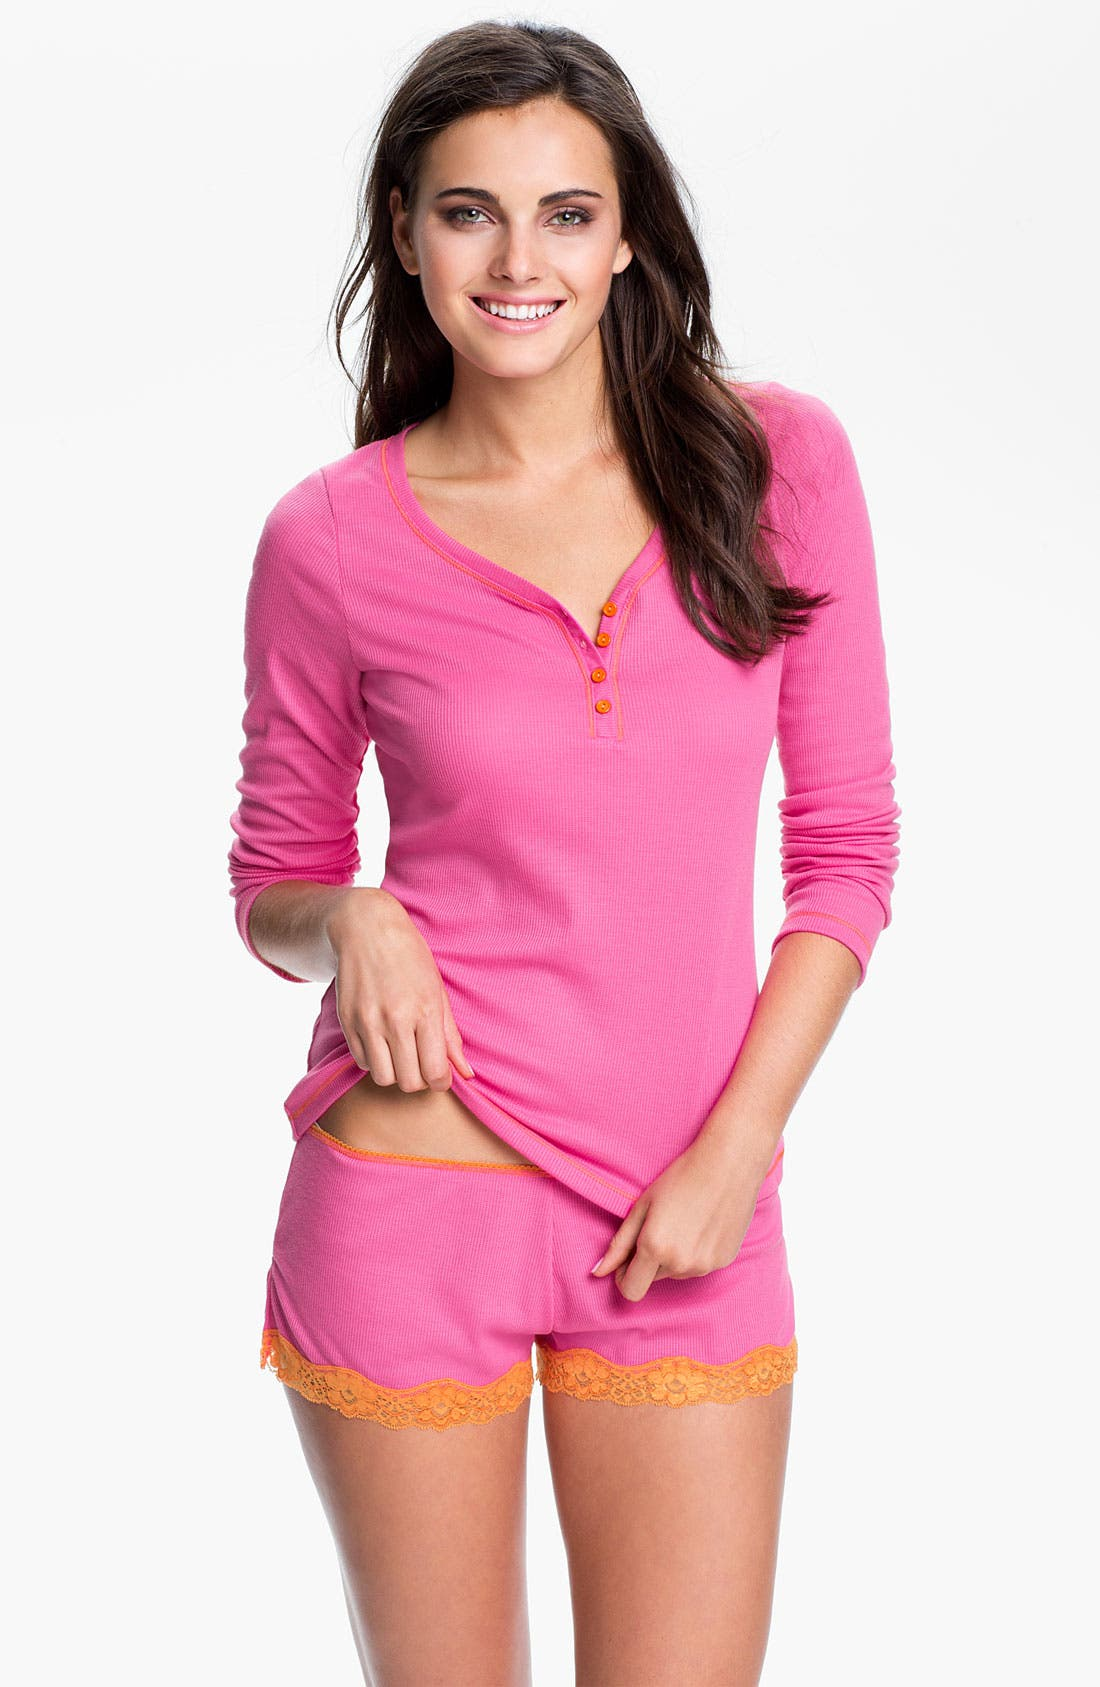 Contrast Trim Pajamas,                             Main thumbnail 1, color,                             Hot Pink W/ Dreamsicle